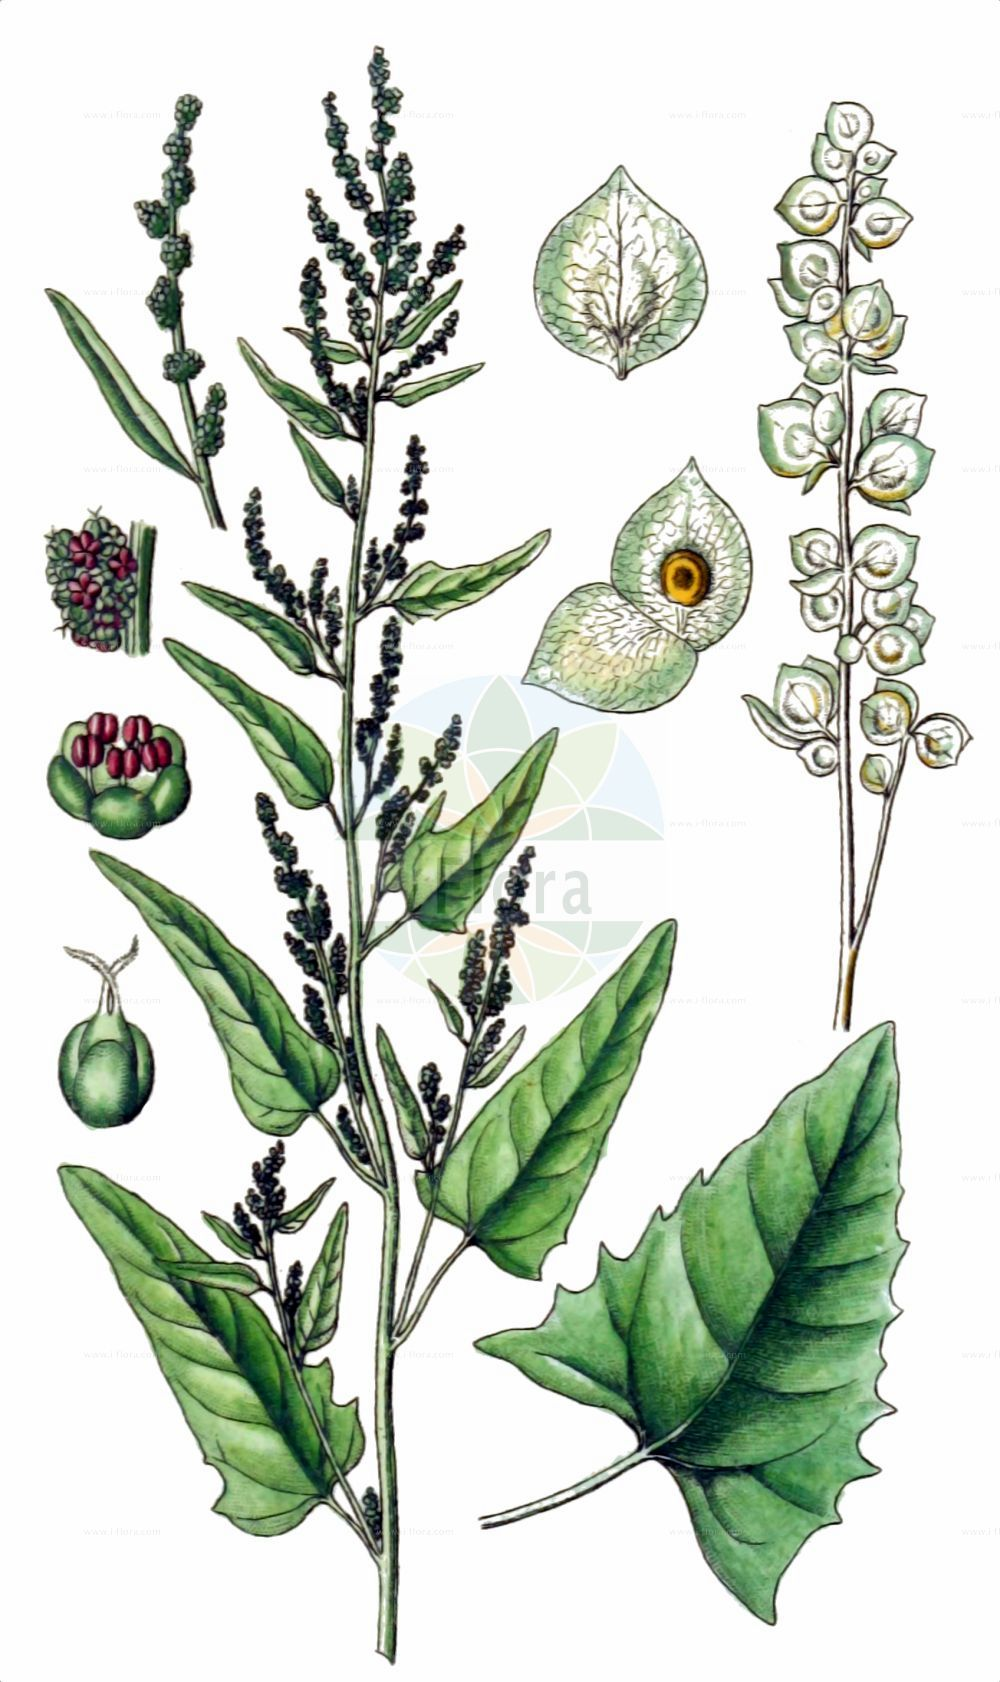 Historische Abbildung von Atriplex hortensis (Garten-Melde - Garden Orache). Das Bild zeigt Blatt, Bluete, Frucht und Same. ---- Historical Drawing of Atriplex hortensis (Garten-Melde - Garden Orache).The image is showing leaf, flower, fruit and seed.(Atriplex hortensis,Garten-Melde,Garden Orache,Atriplex hortensis,Atriplex microtheca,Garten-Melde,Garden Orache,Atriplex,Melde,Saltbush,Amaranthaceae,Fuchsschwanzgewaechse,Pigweed family,Blatt,Bluete,Frucht,Same,leaf,flower,fruit,seed,Sturm (1796f))